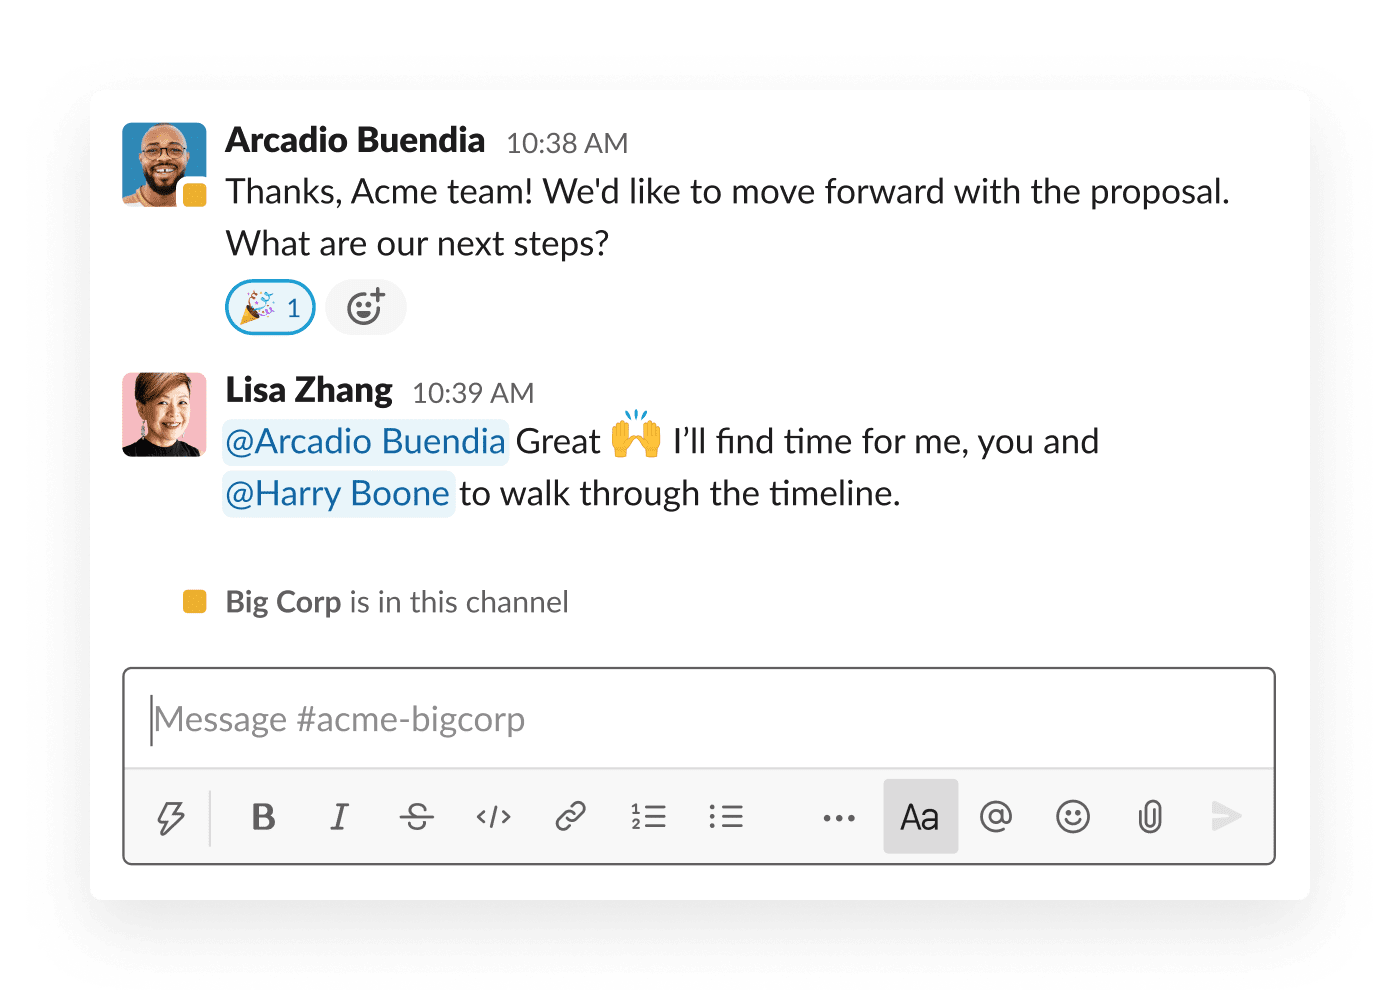 Two organizations move forward with a proposal in a shared Slack channel